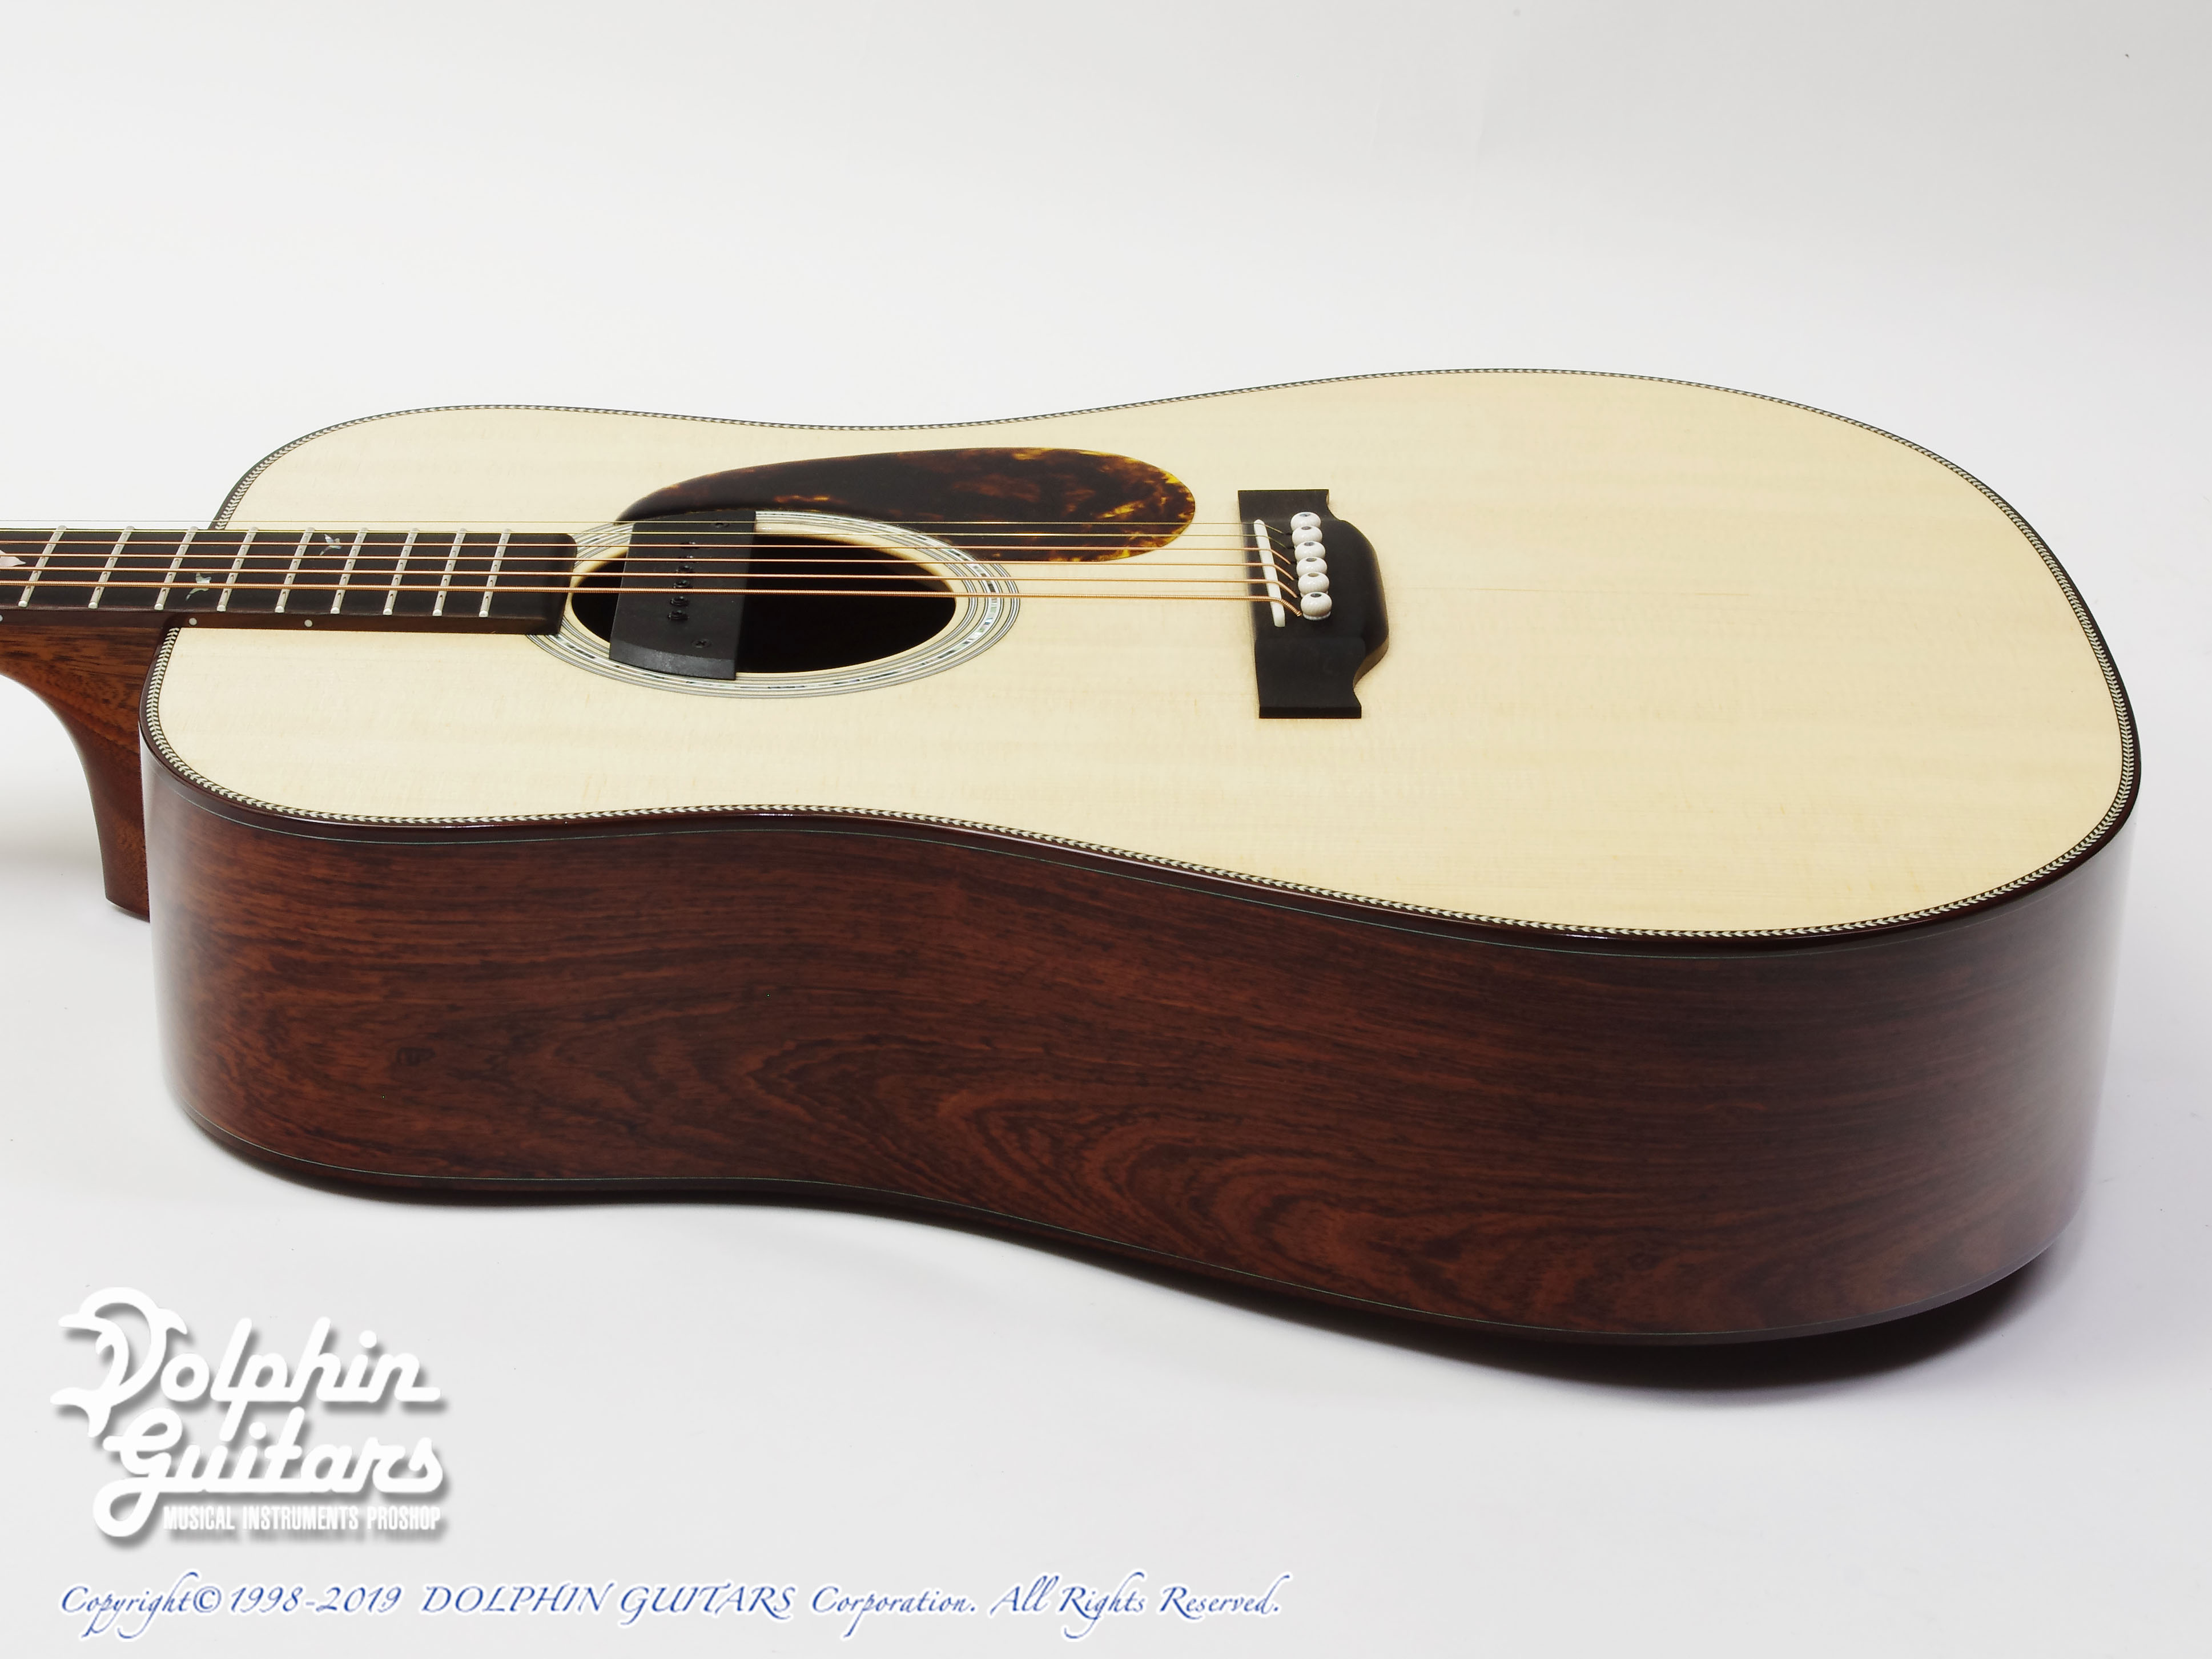 Greven Guitars Japan: Oshio-D HR (Honduras Rosewood) w/RAPTOR SYSTEM by TRIAL  (2)